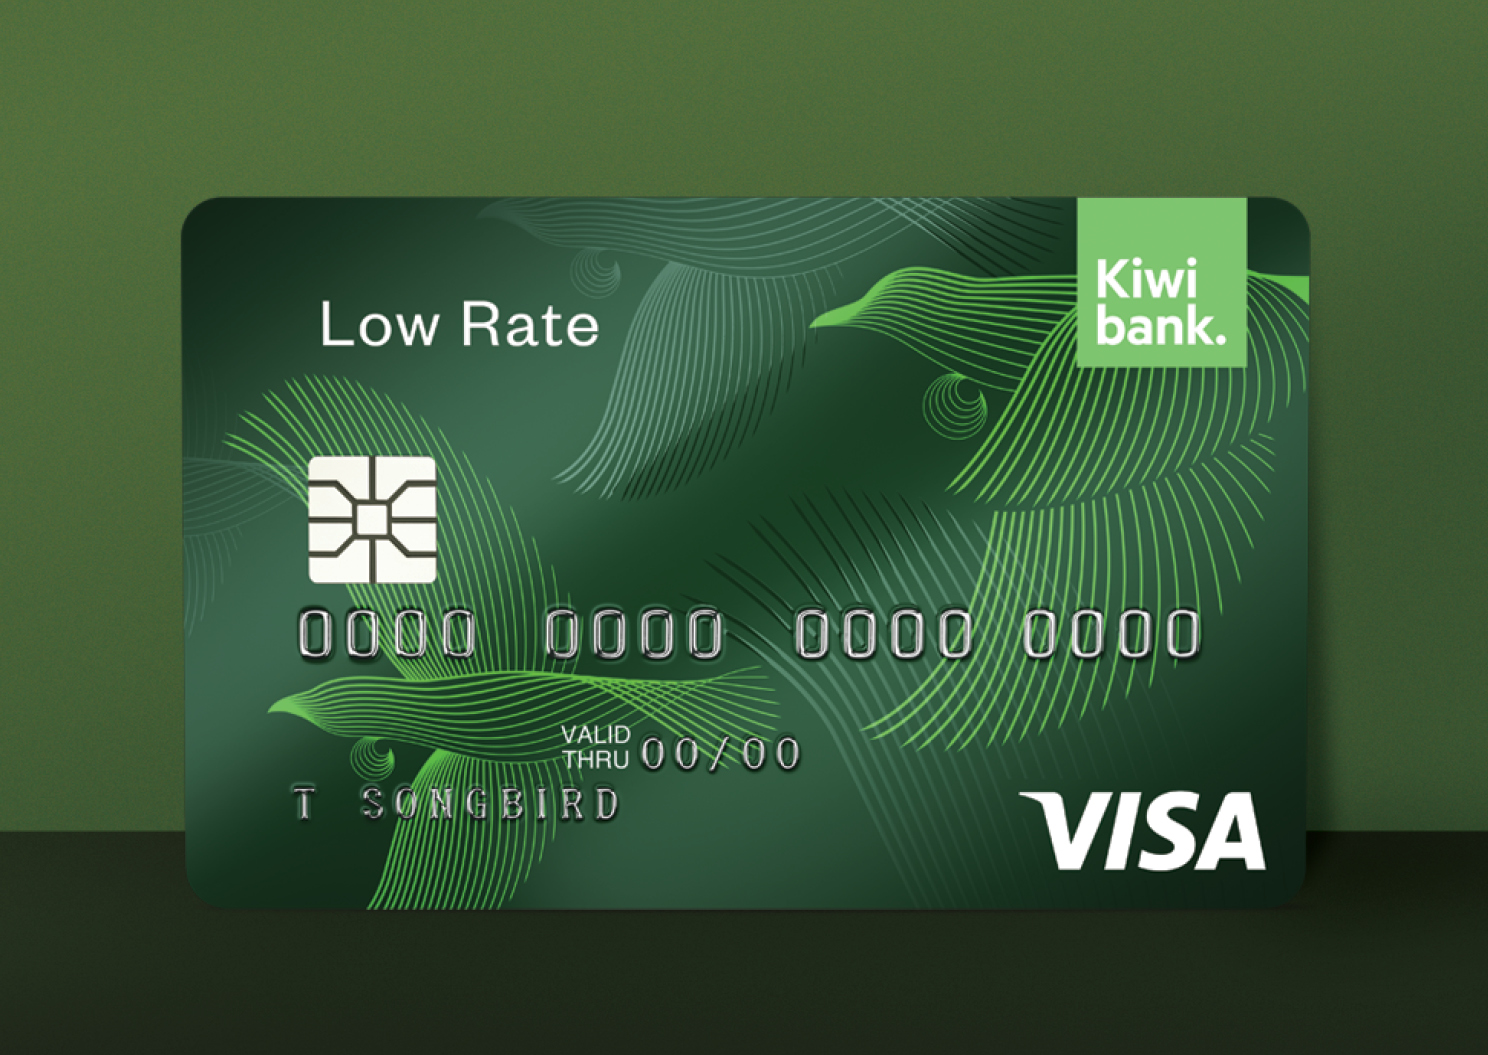 Kiwibank low rate visa